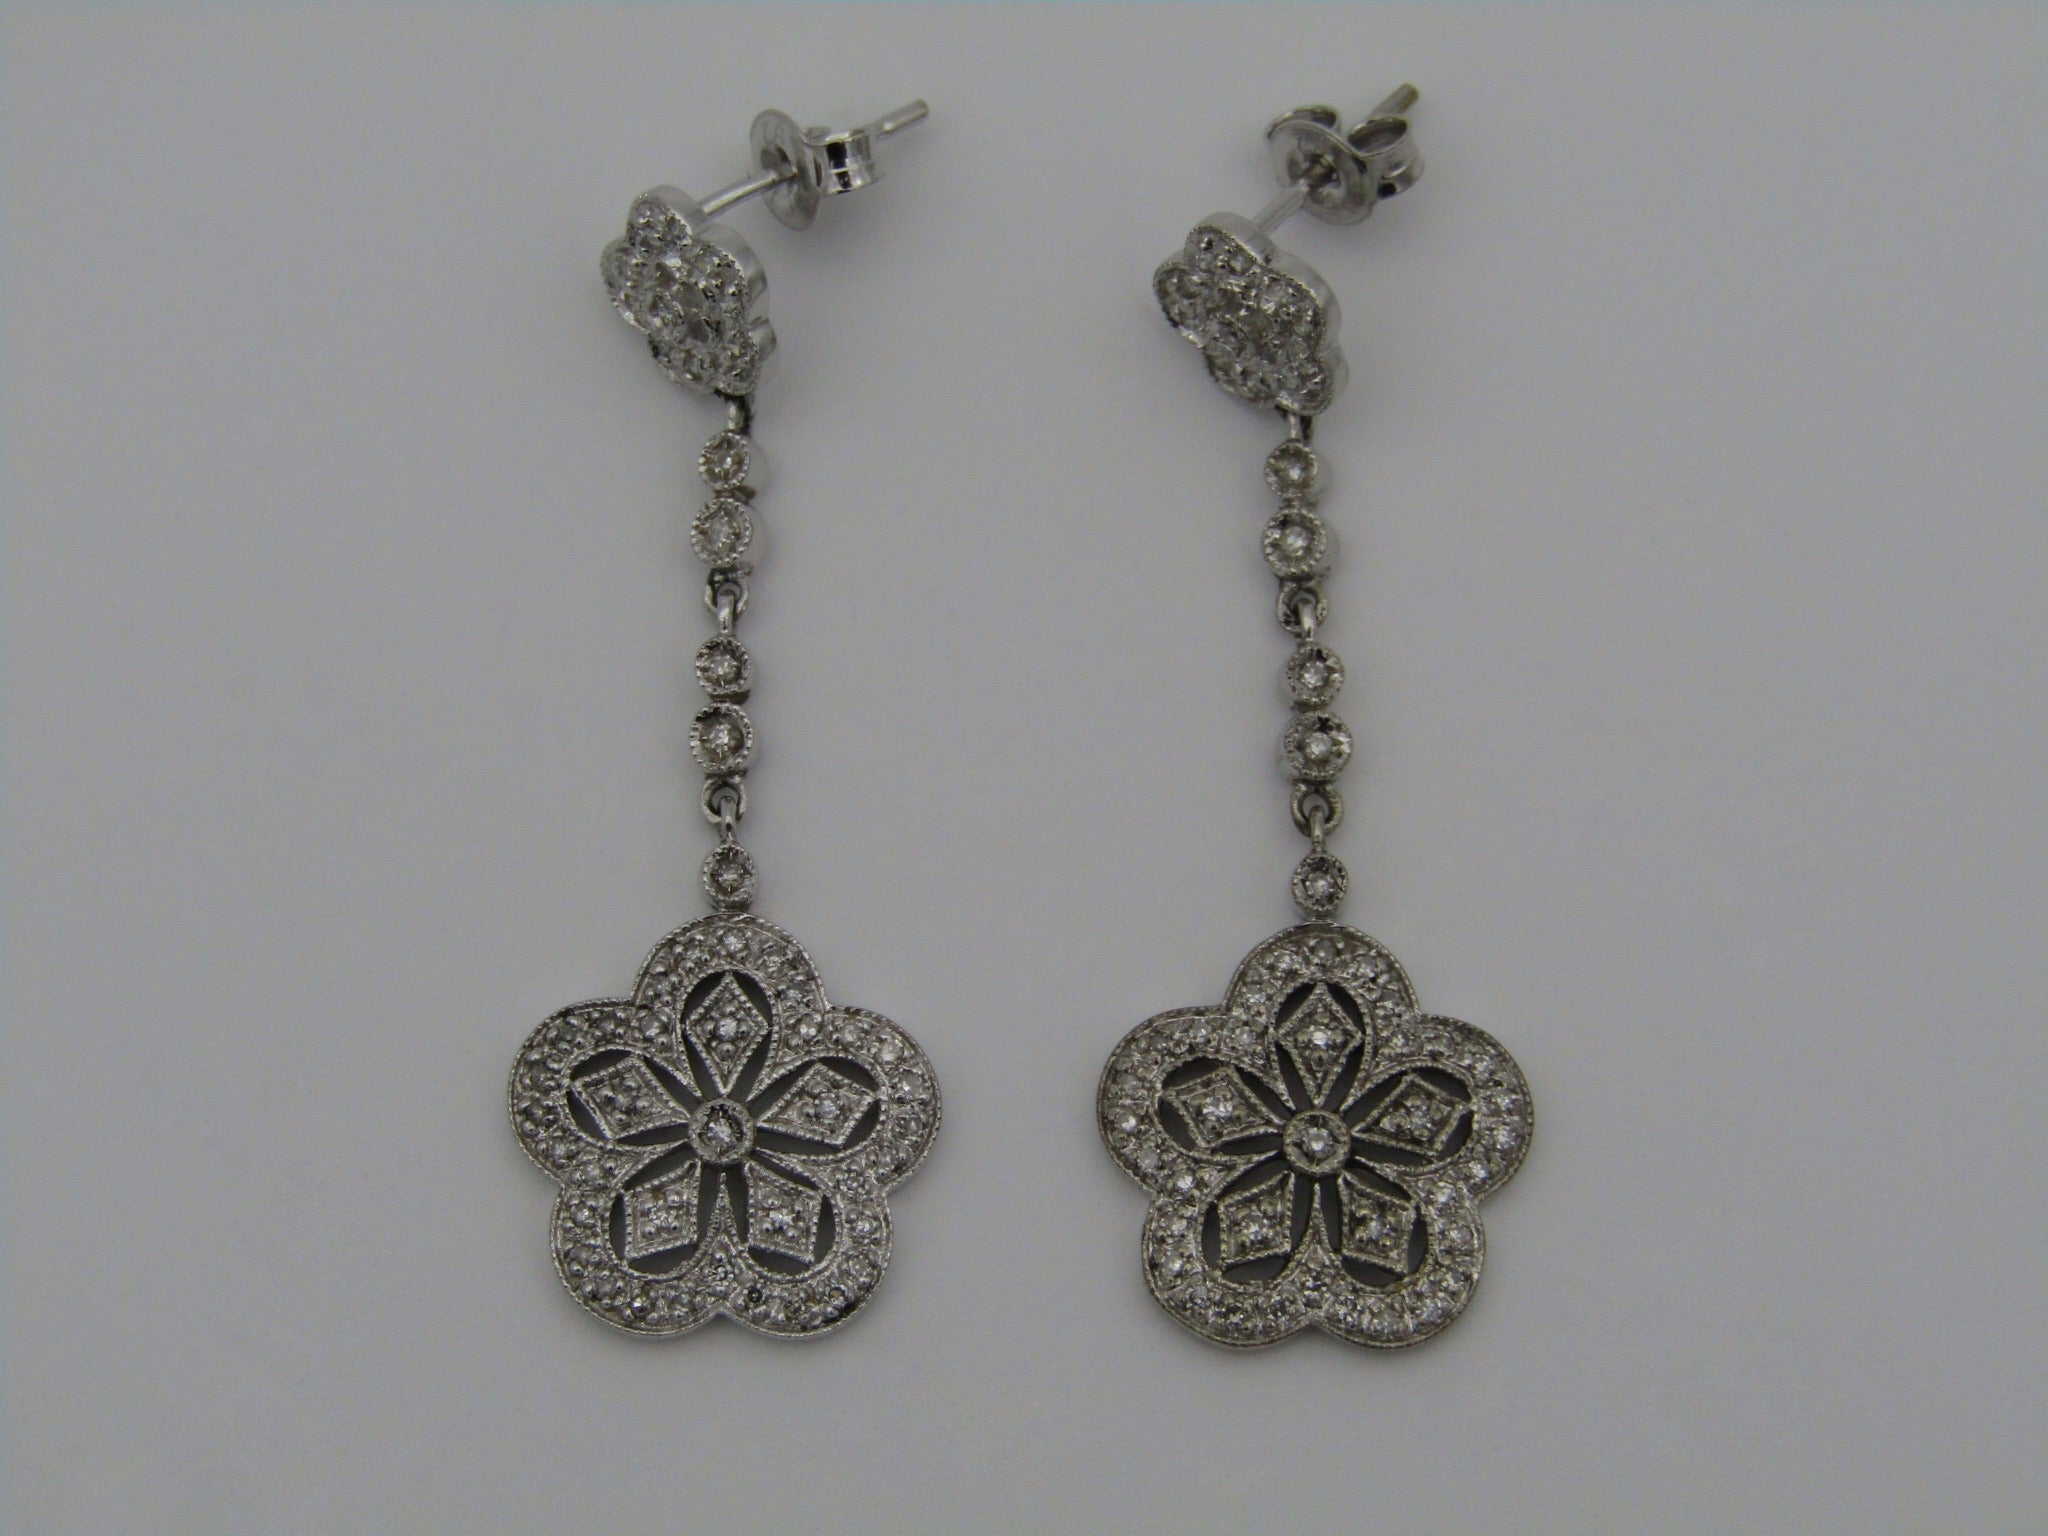 A pair of 9kt gold diamond earrings.